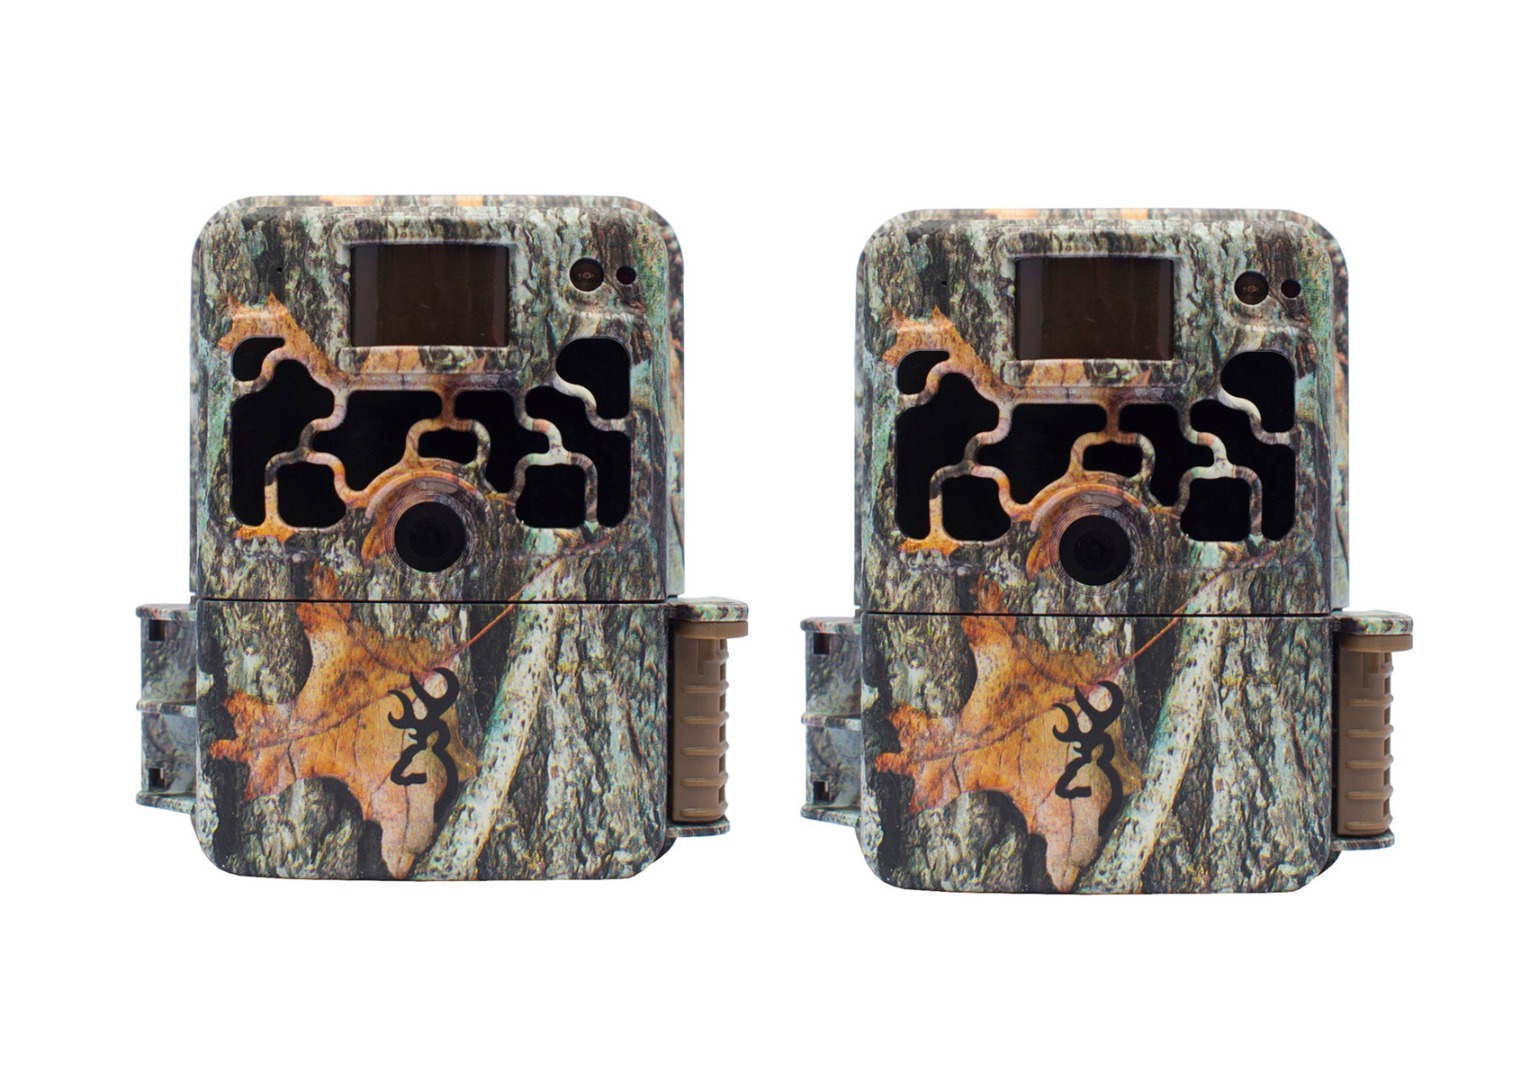 (2) Browning DARK OPS ELITE Sub Micro Trail Game Camera (10MP) | BTC6HDE by Overstock